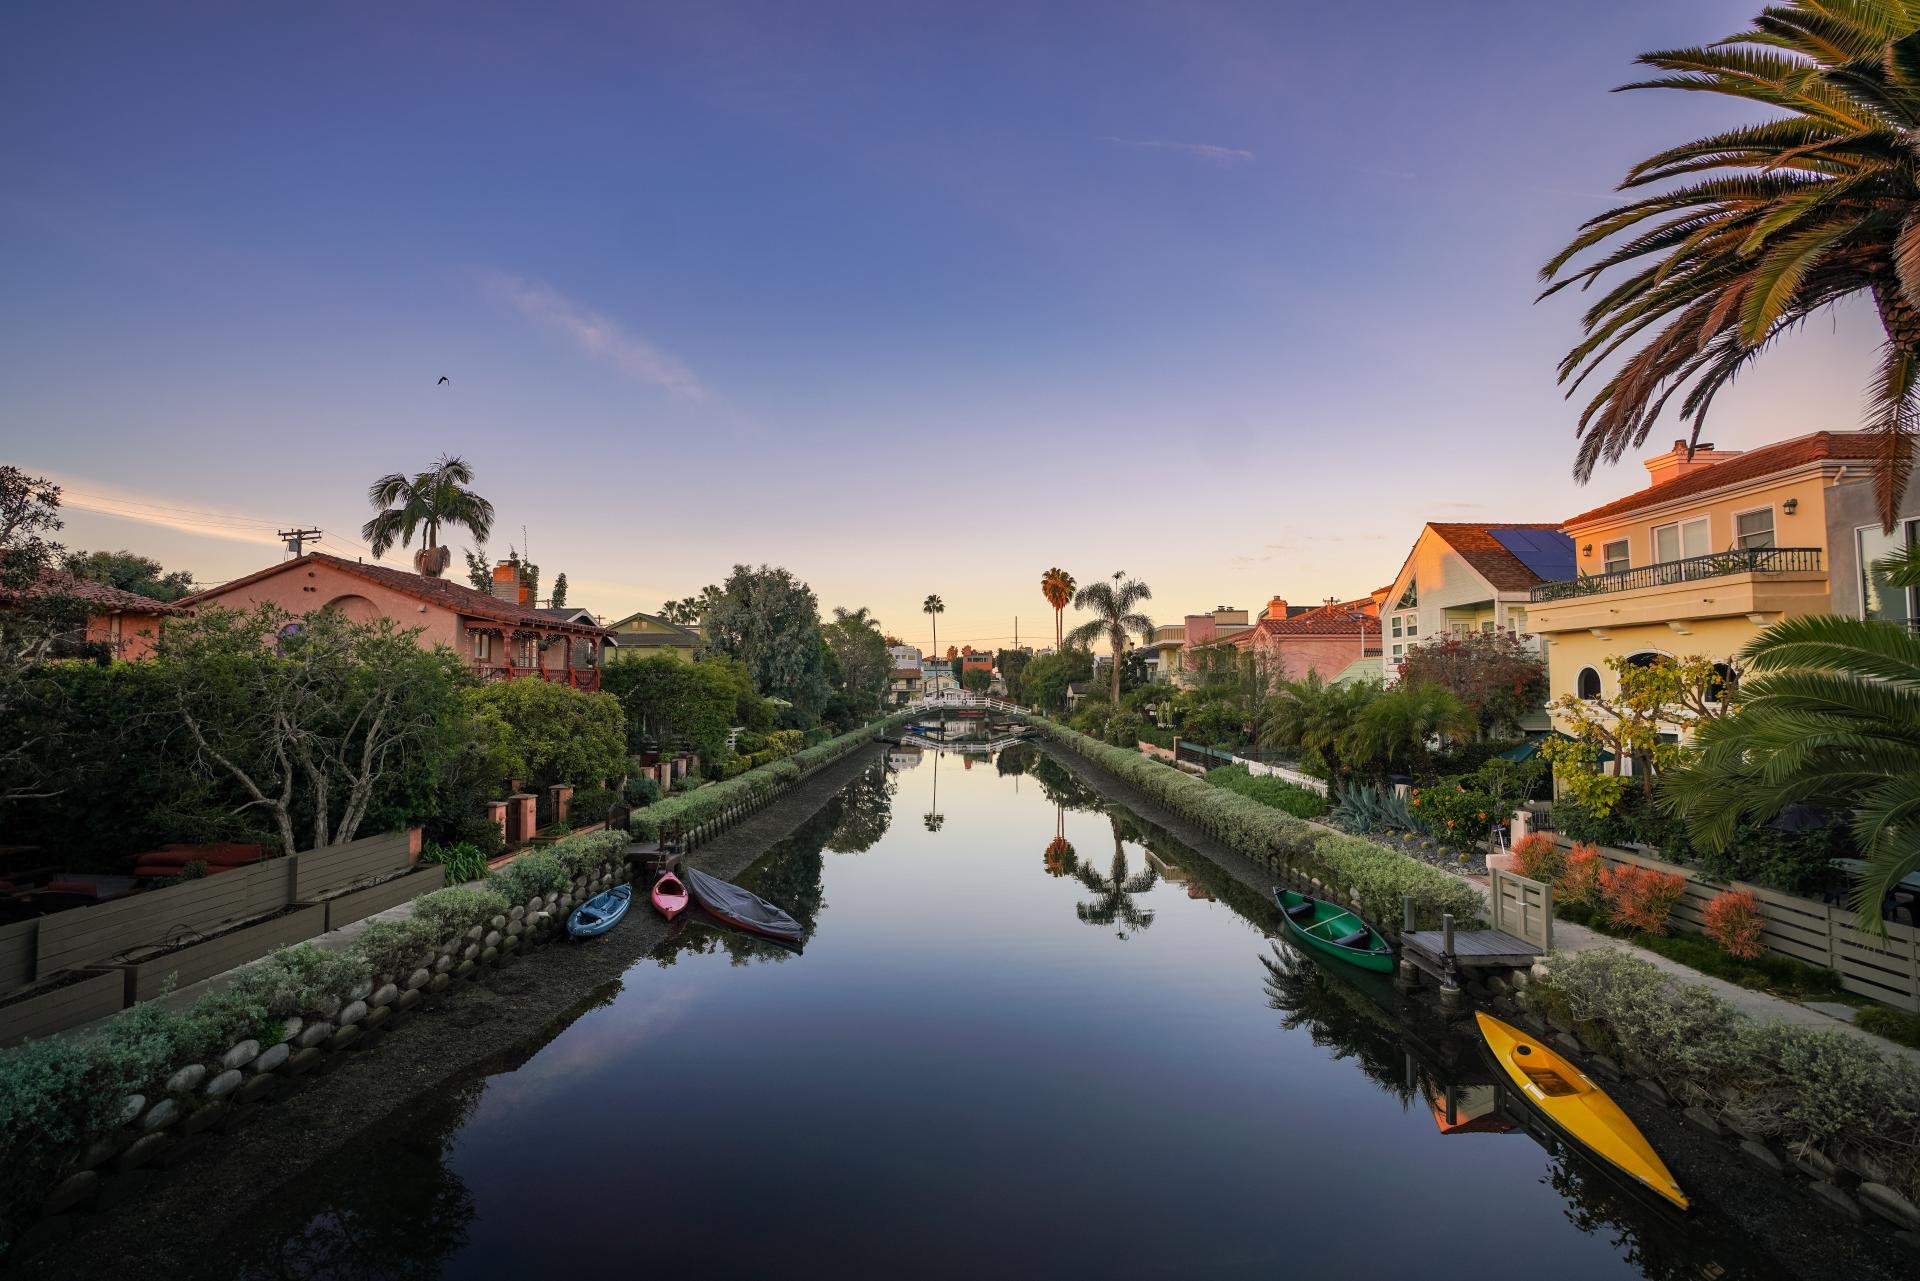 The Venice Canal Historic District